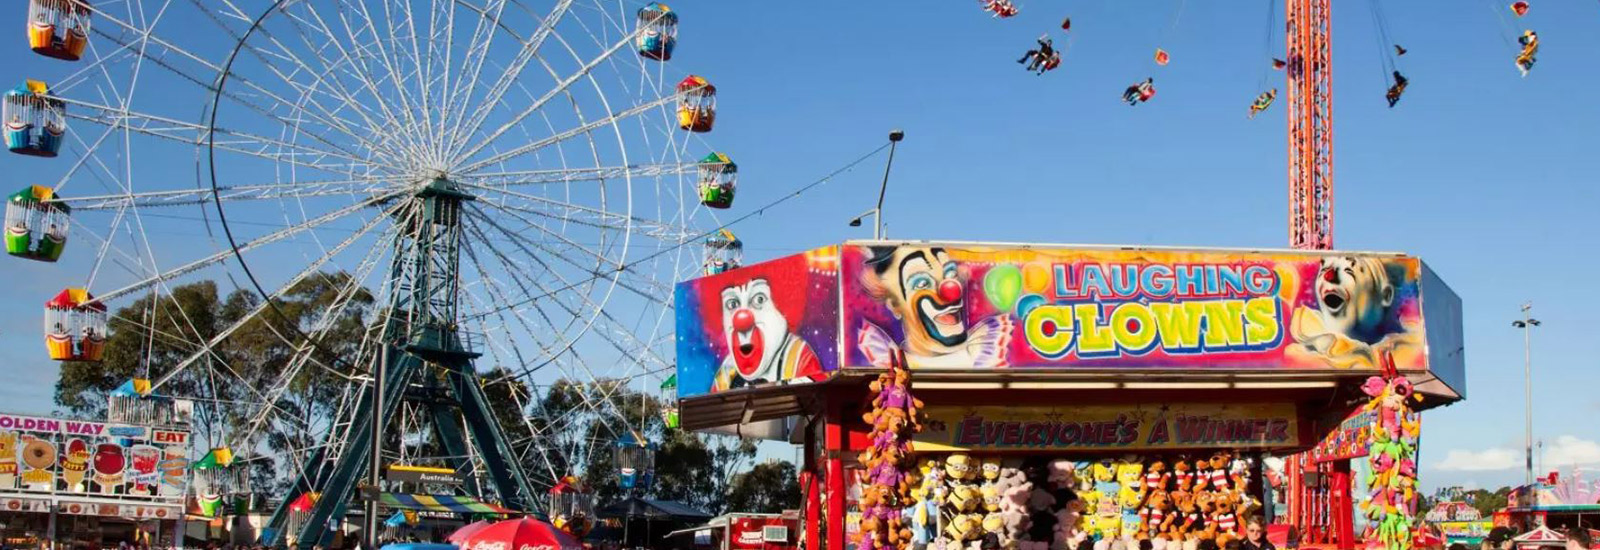 Easter school holidays at the Sydney Royal Easter Show